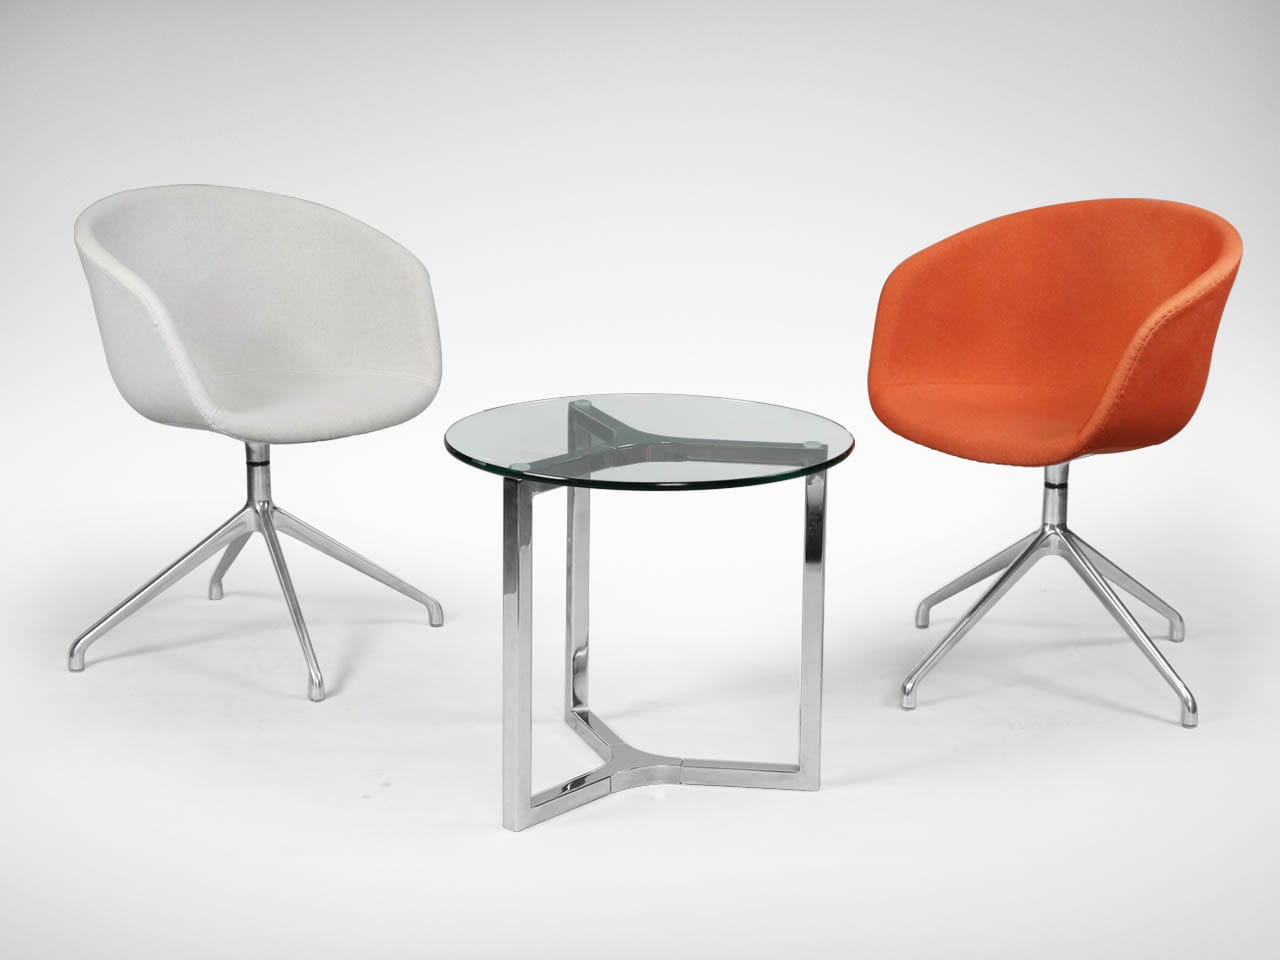 Kravit coffee table small comfort design the chair for Table 6 to 20